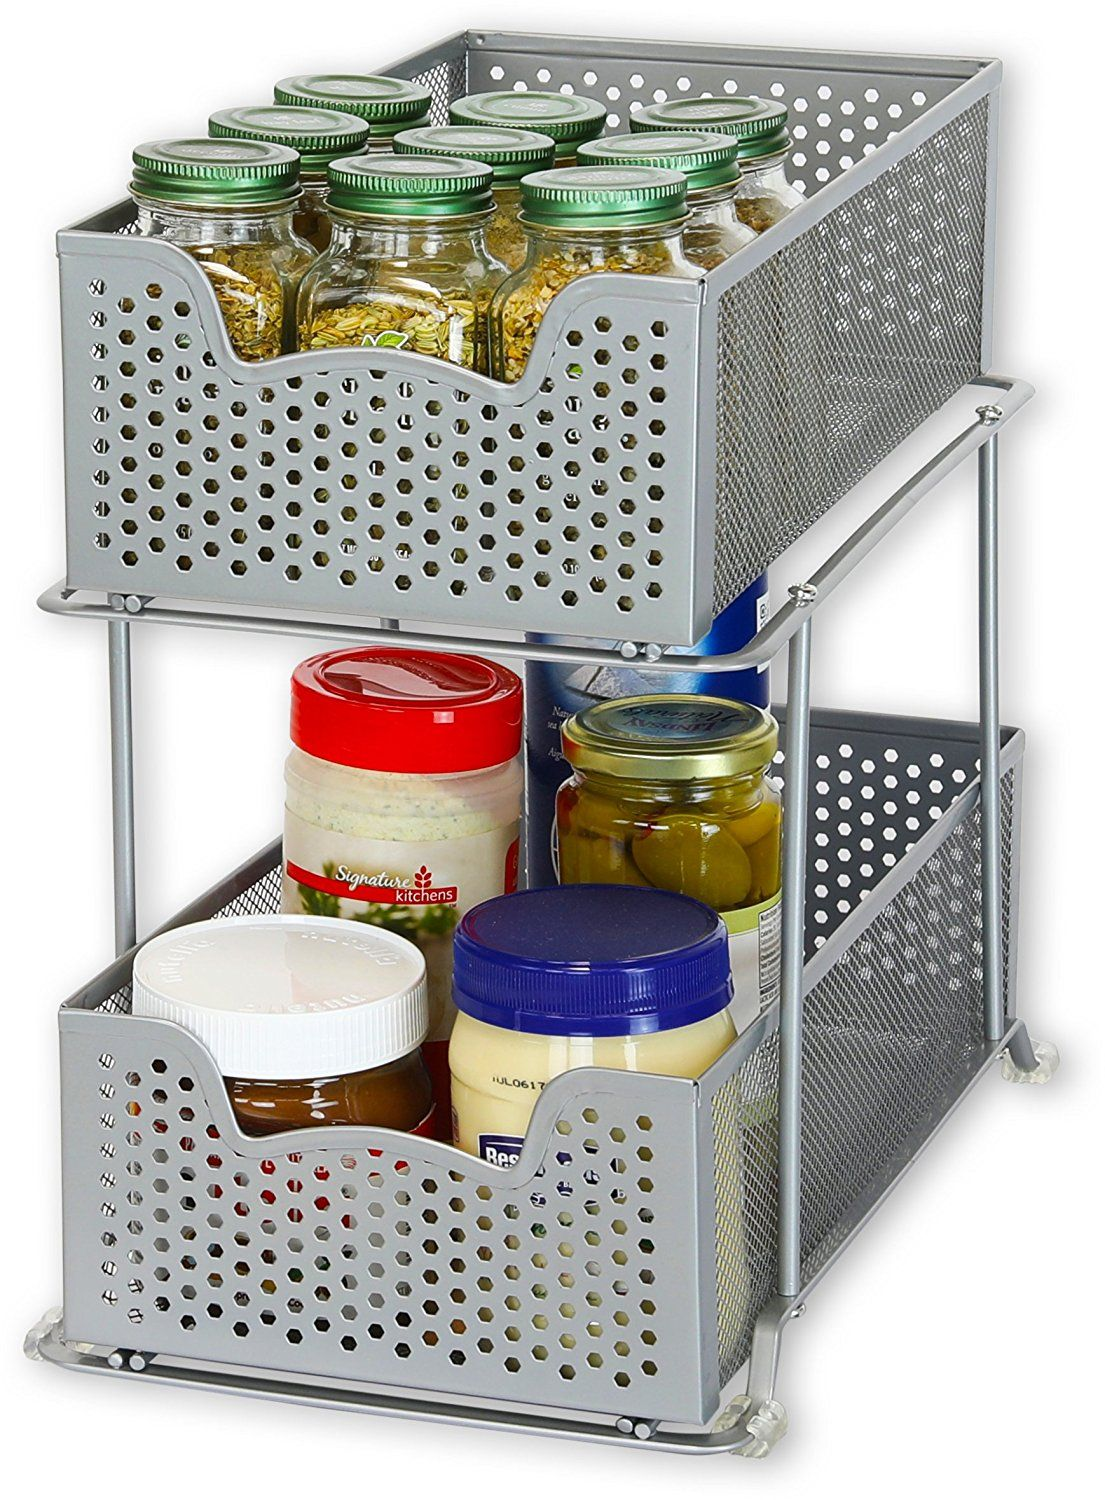 Simplehouseware 2 Tier Sliding Cabinet Basket Organizer Drawer Bronze Kitchen Dining Pinterest